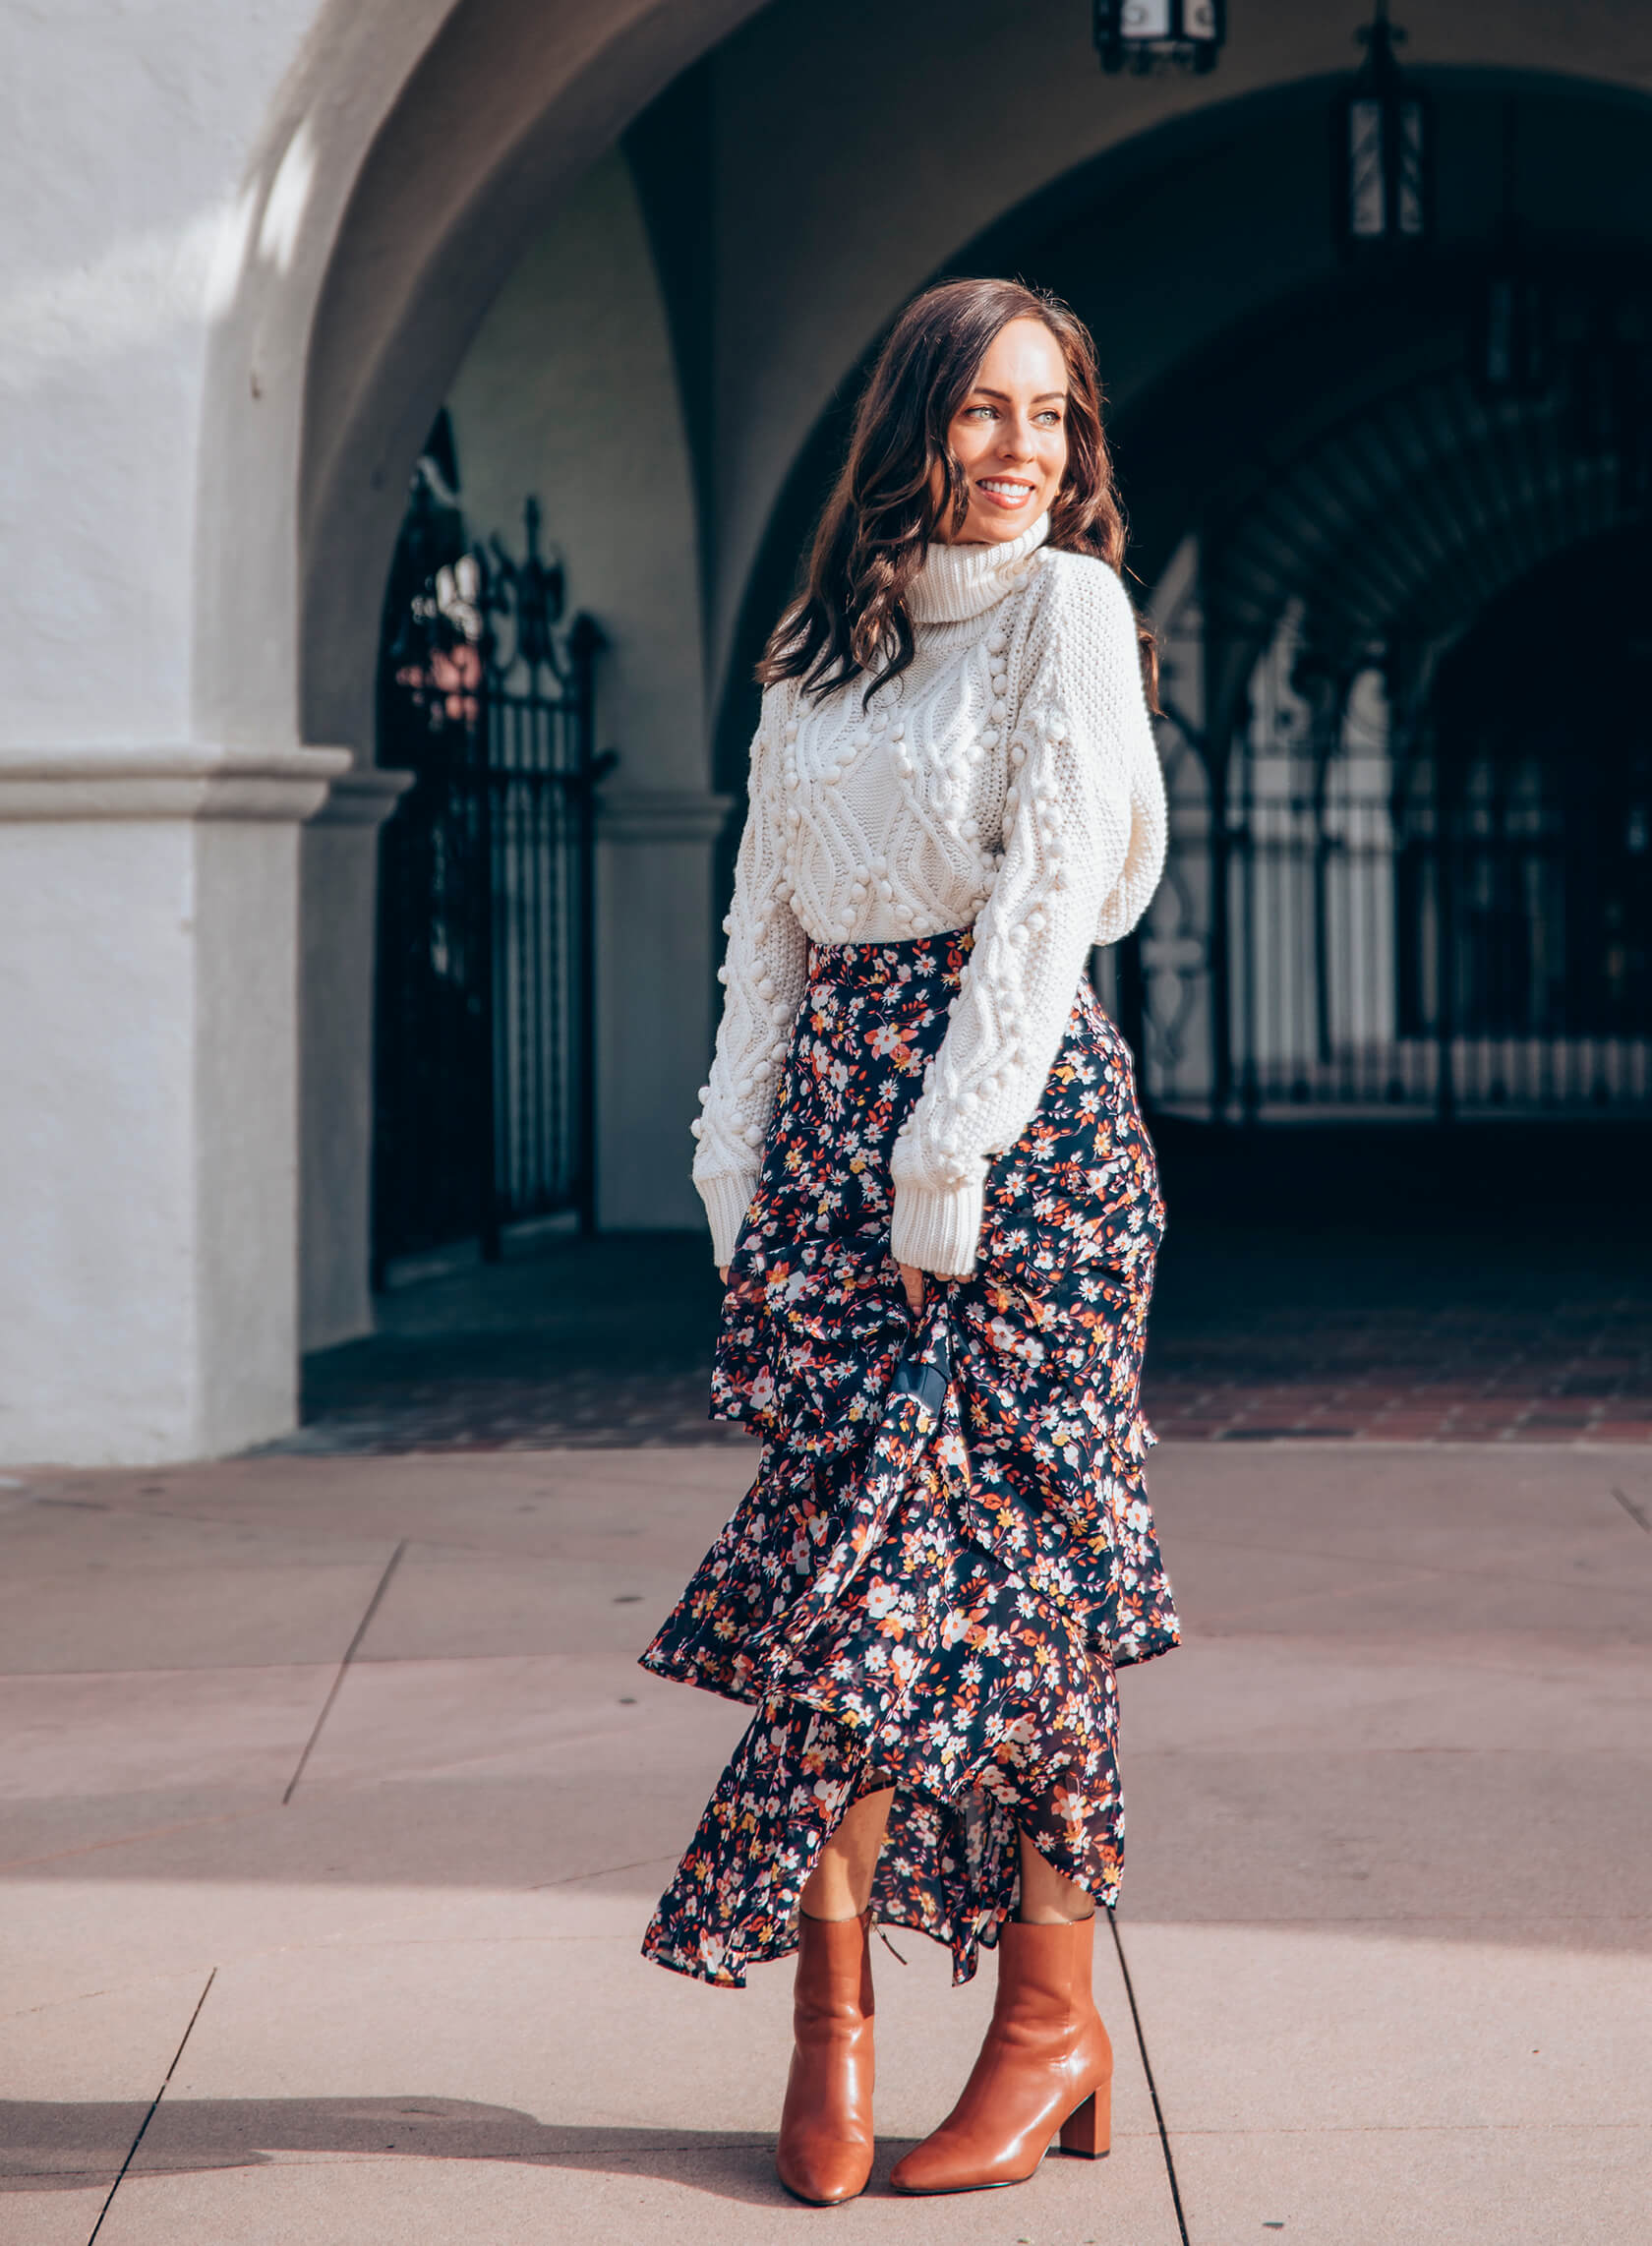 Sydne Style shows how to wear a maxi skirt with sweater and boots